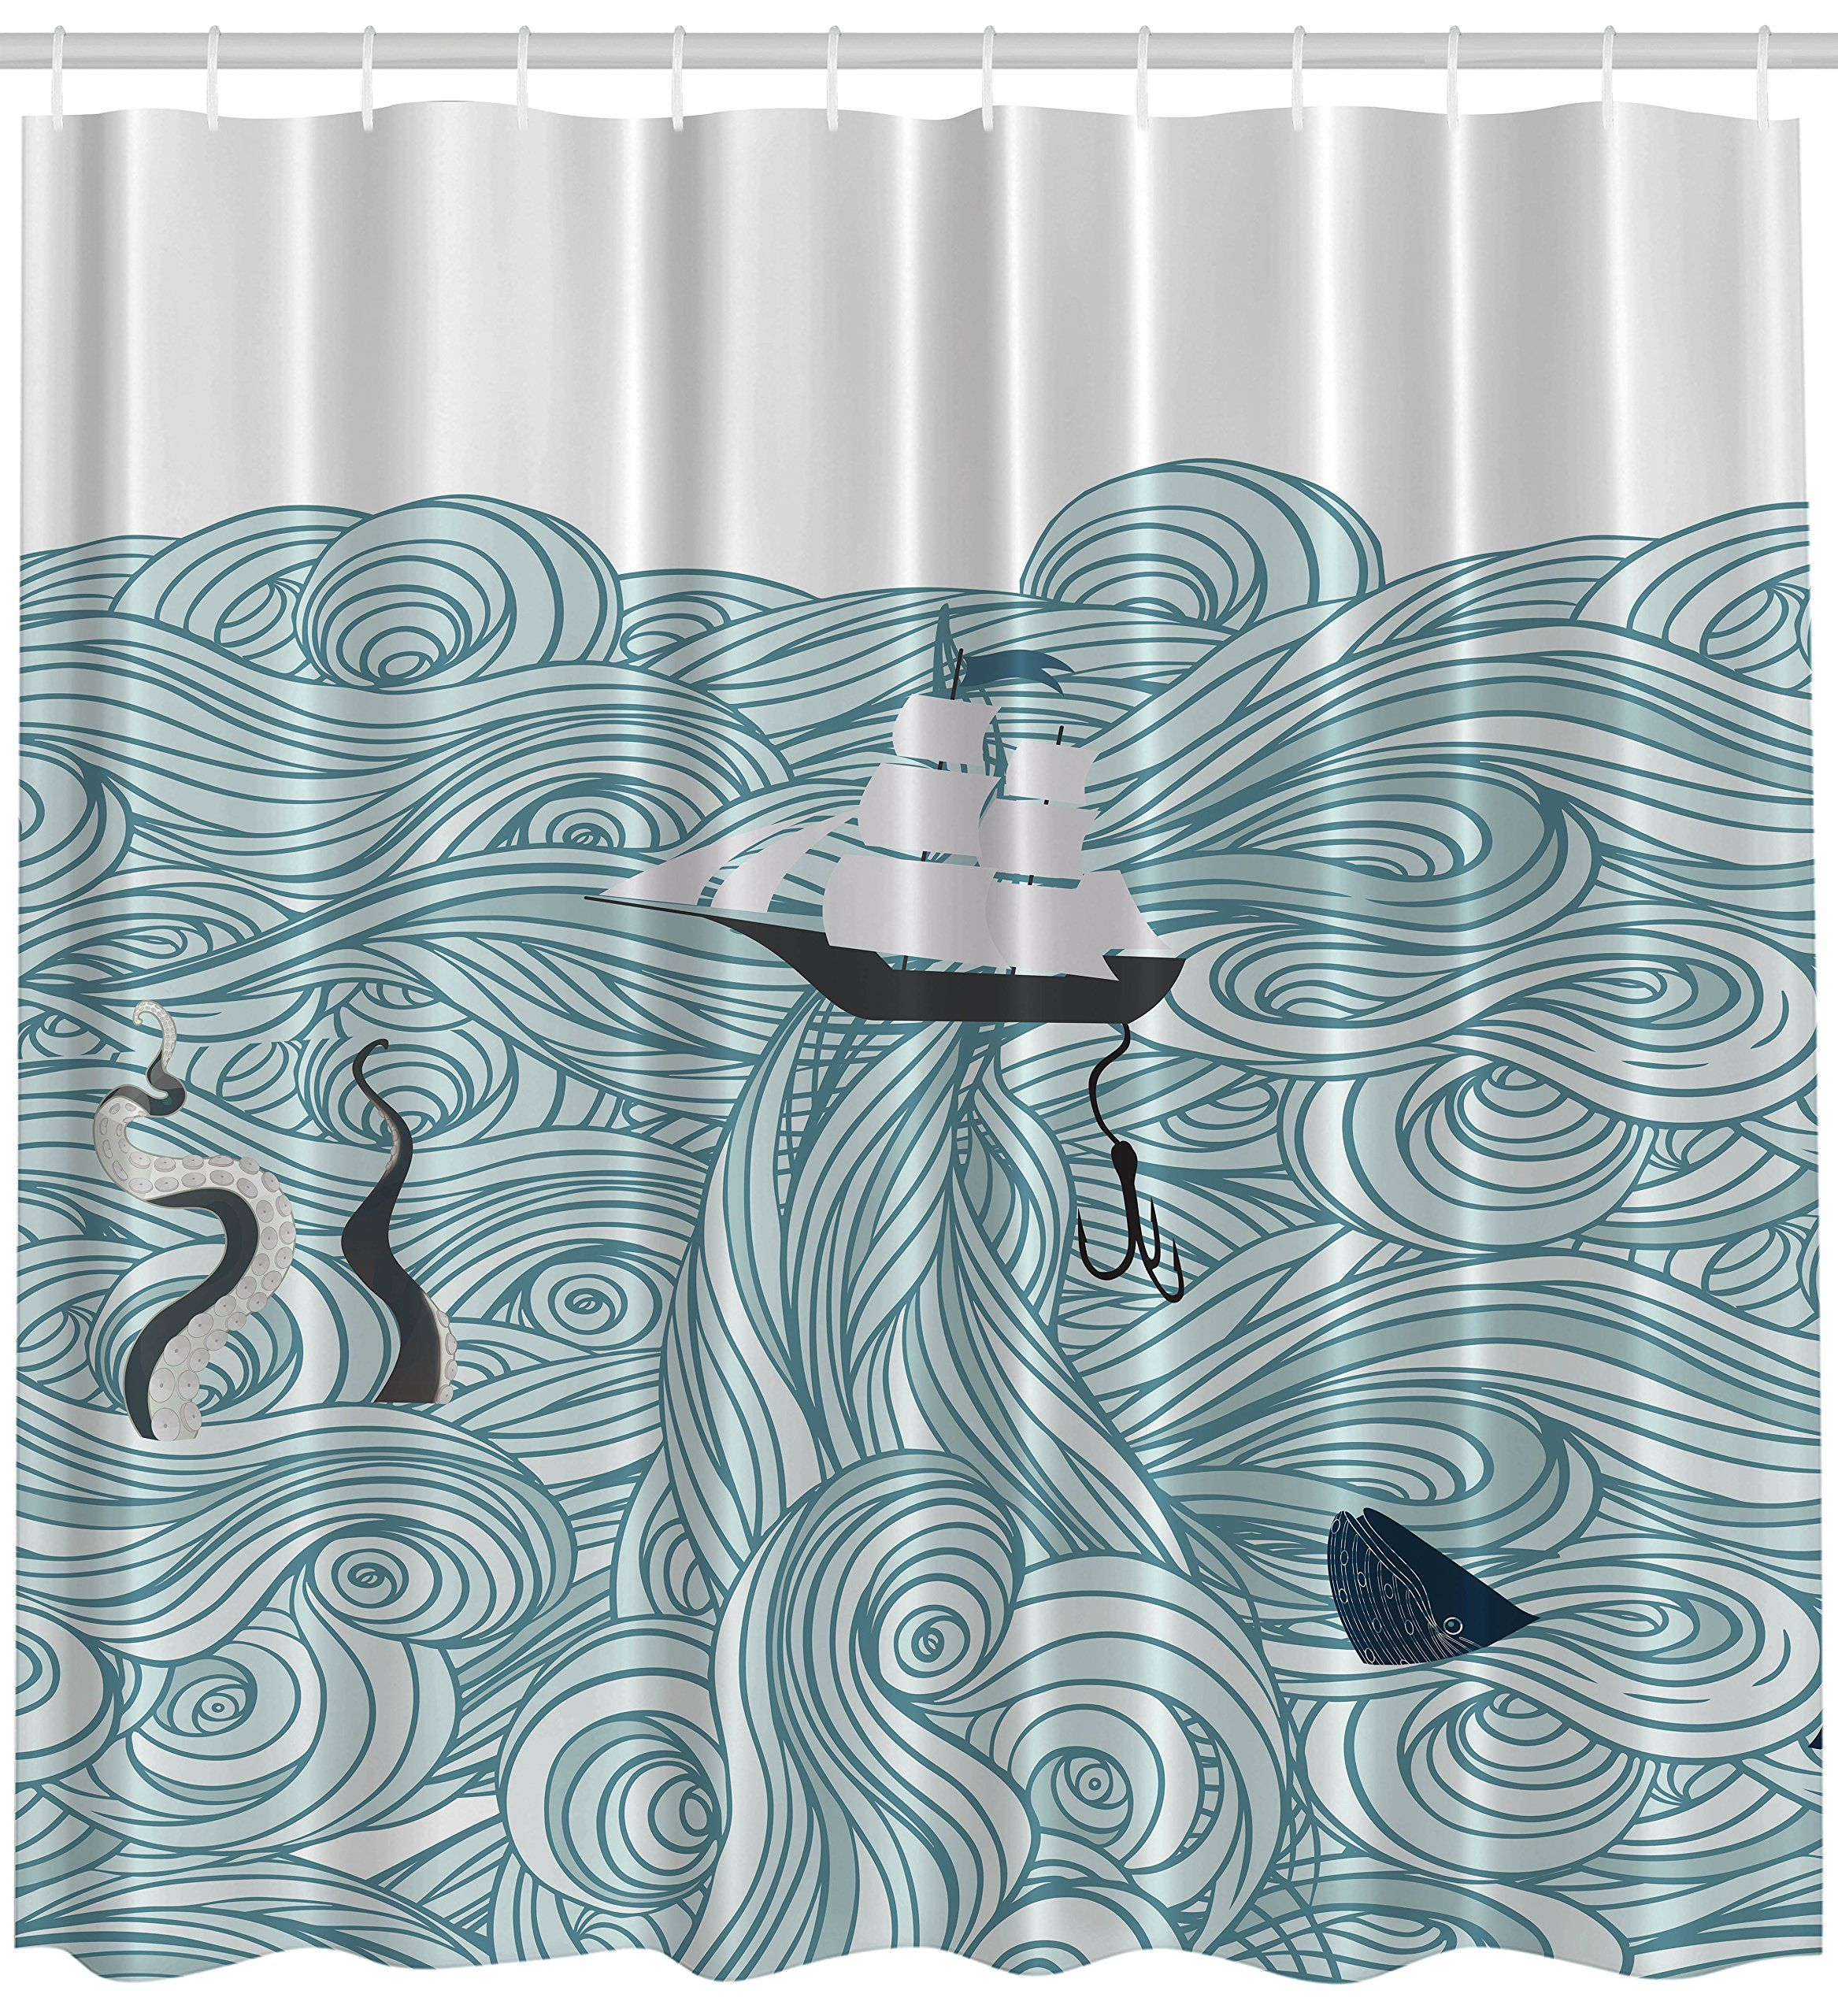 Shower Curtain Japanese Great Waves Ocean Fisherman Gifts Sail